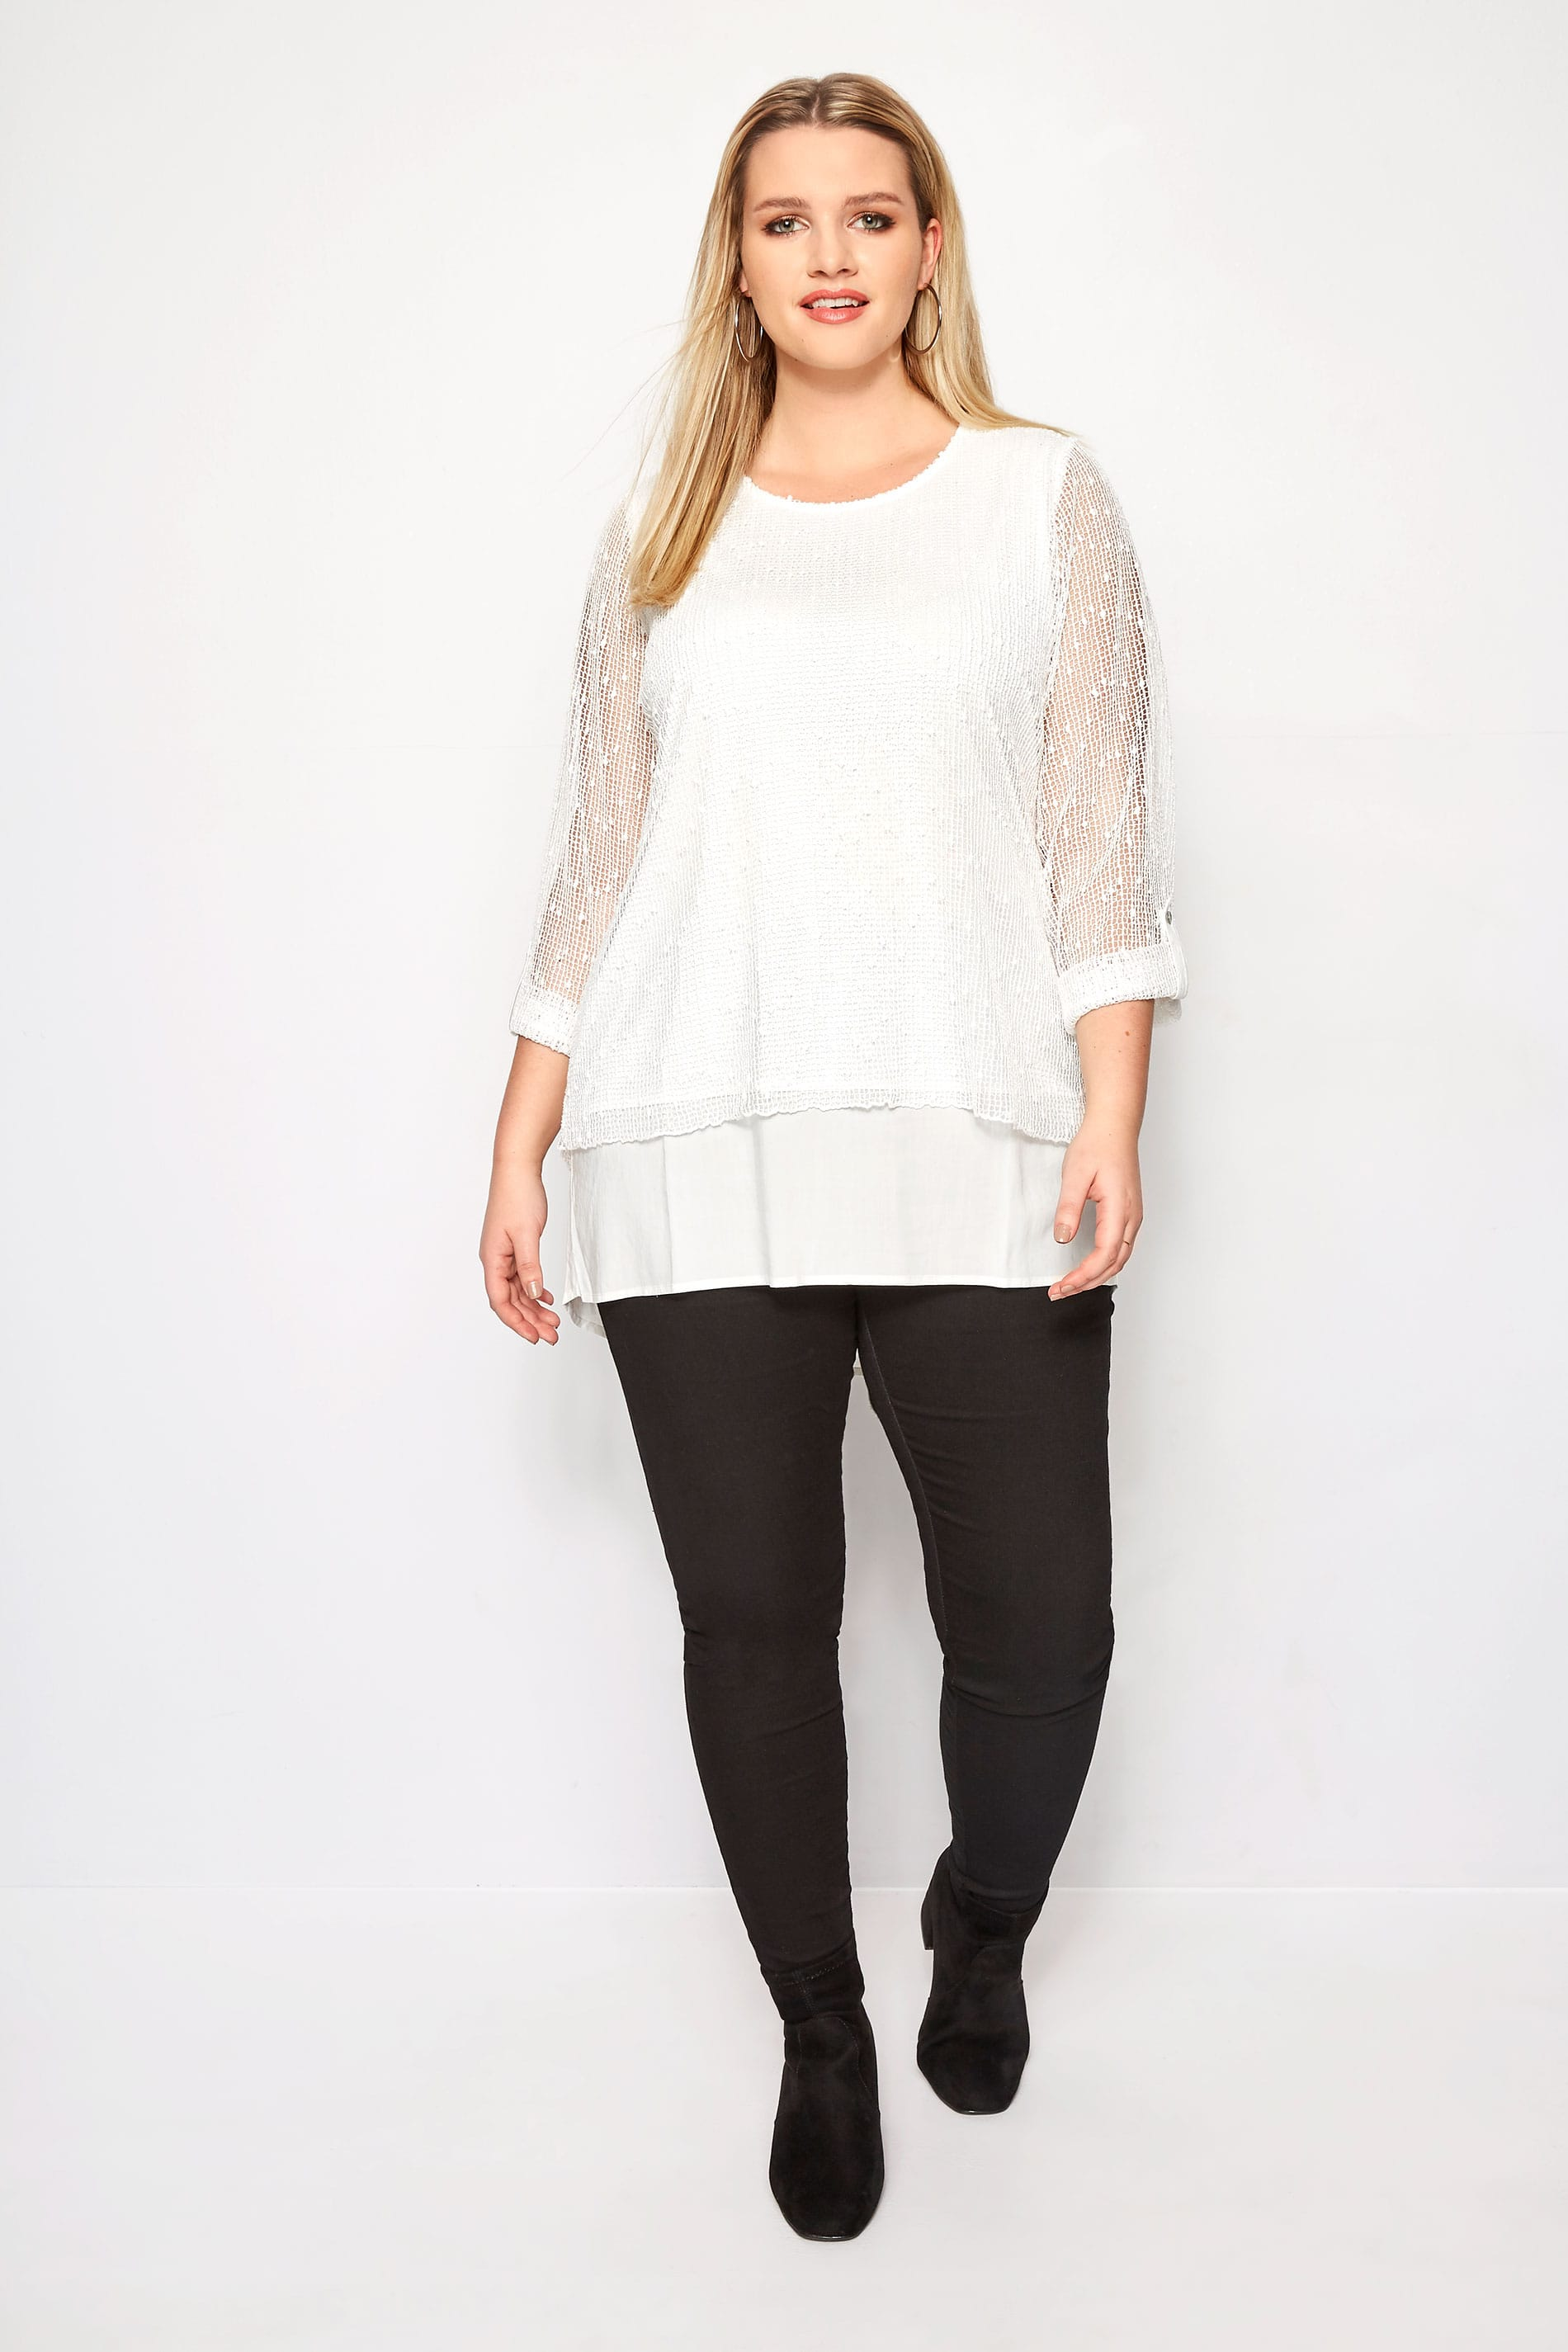 Rooms: Plus Size Ivory Layered Crochet Top